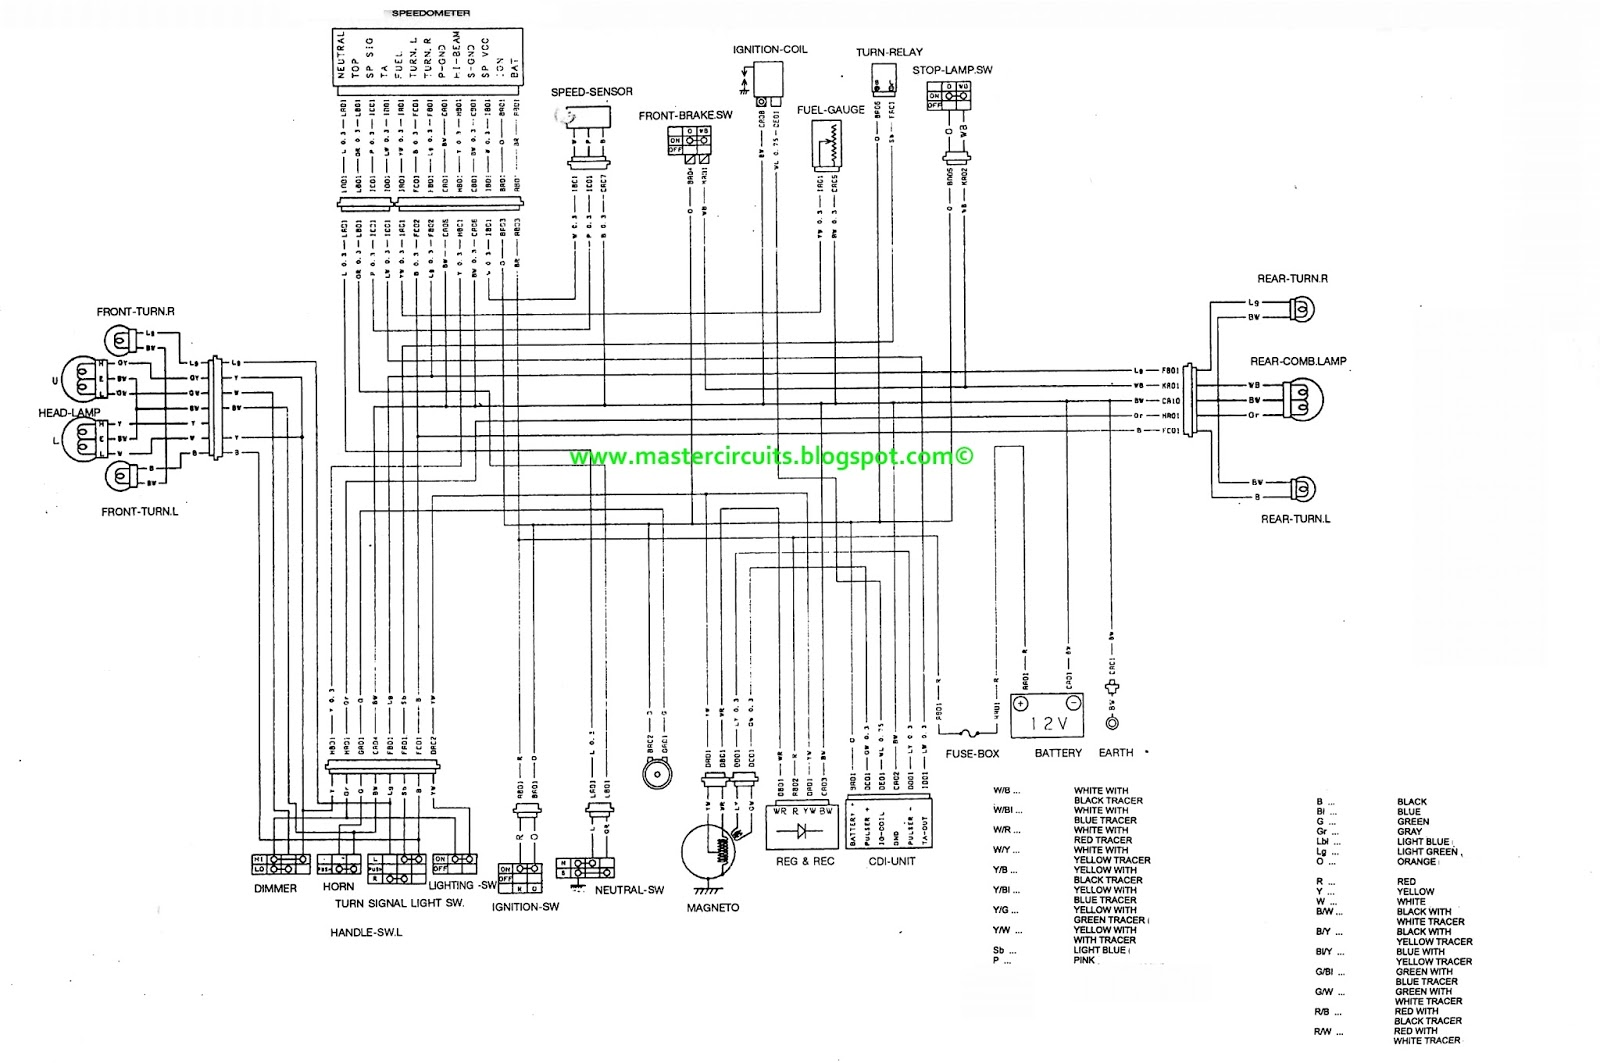 raider 150r wiring diagram suzuki raider wiring diagram suzuki wiring diagrams instruction suzuki [ 1600 x 1063 Pixel ]